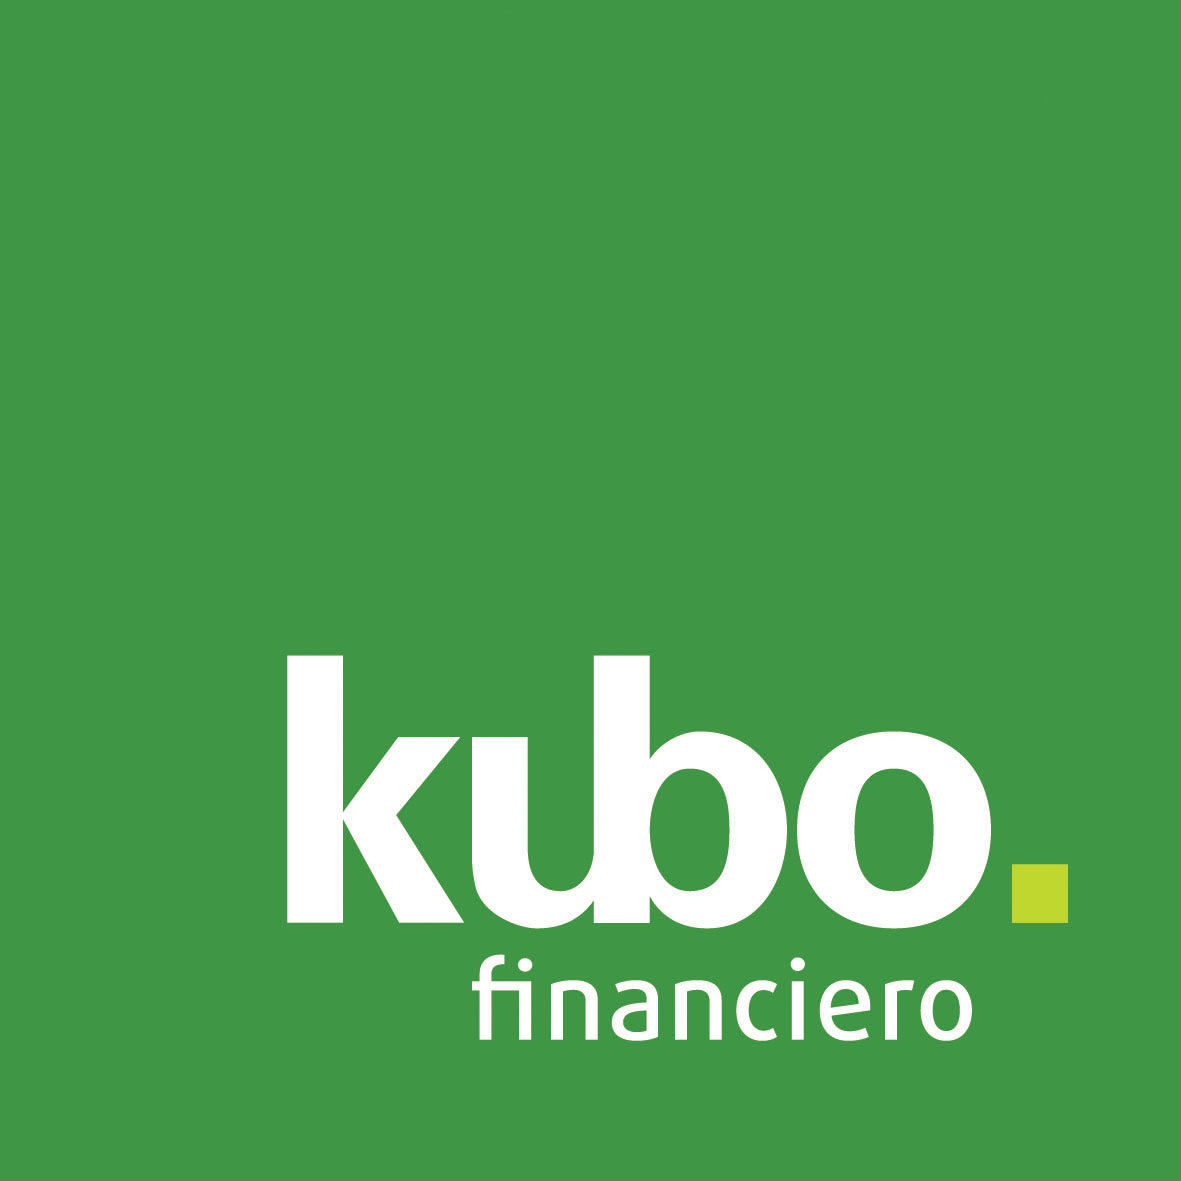 kubofinanciero.com logo